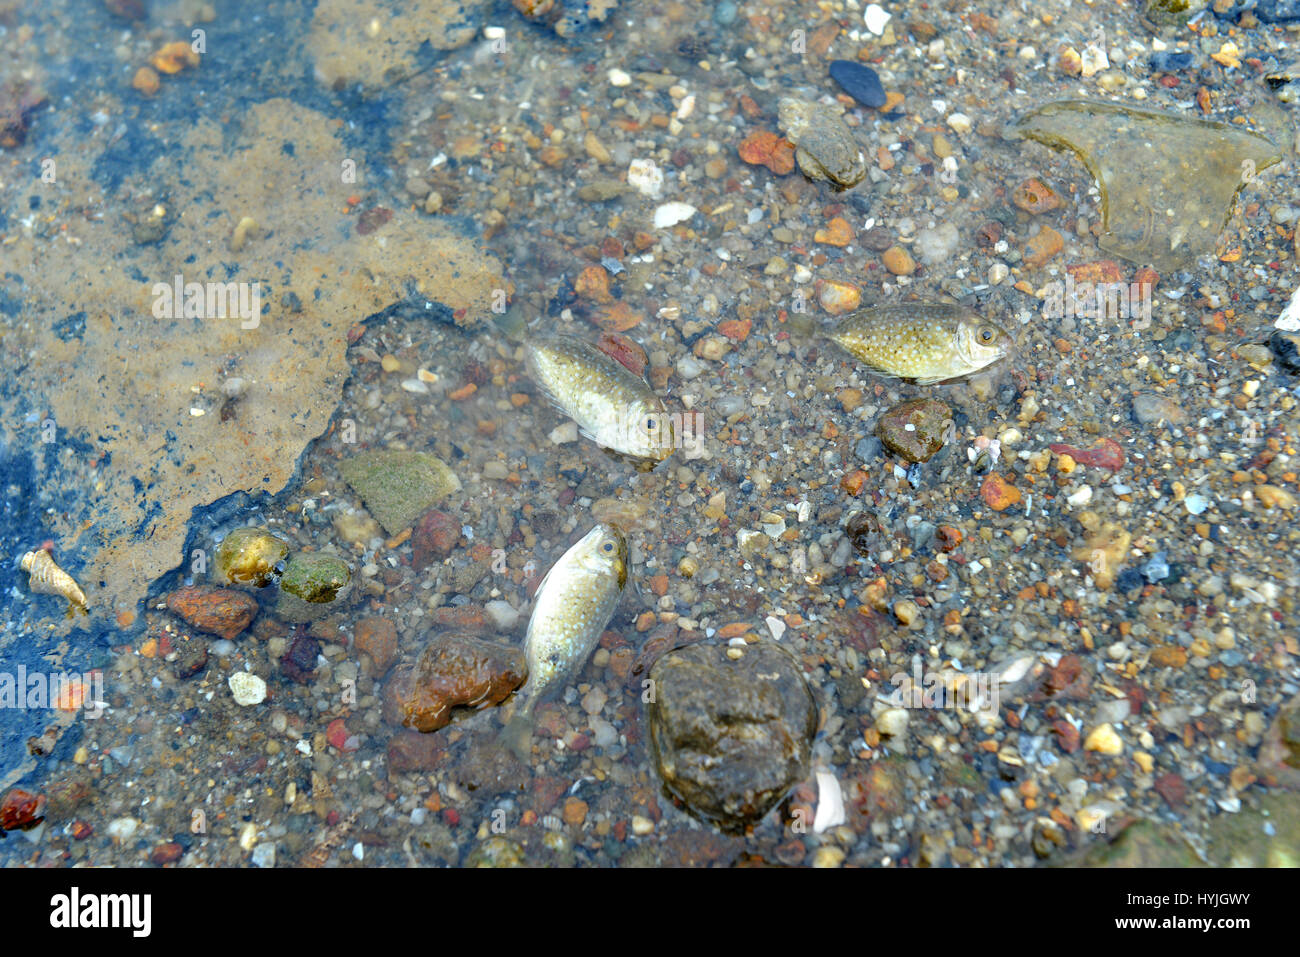 Small fish die on the dirty beach photo in outdoor sun and low lighting. - Stock Image